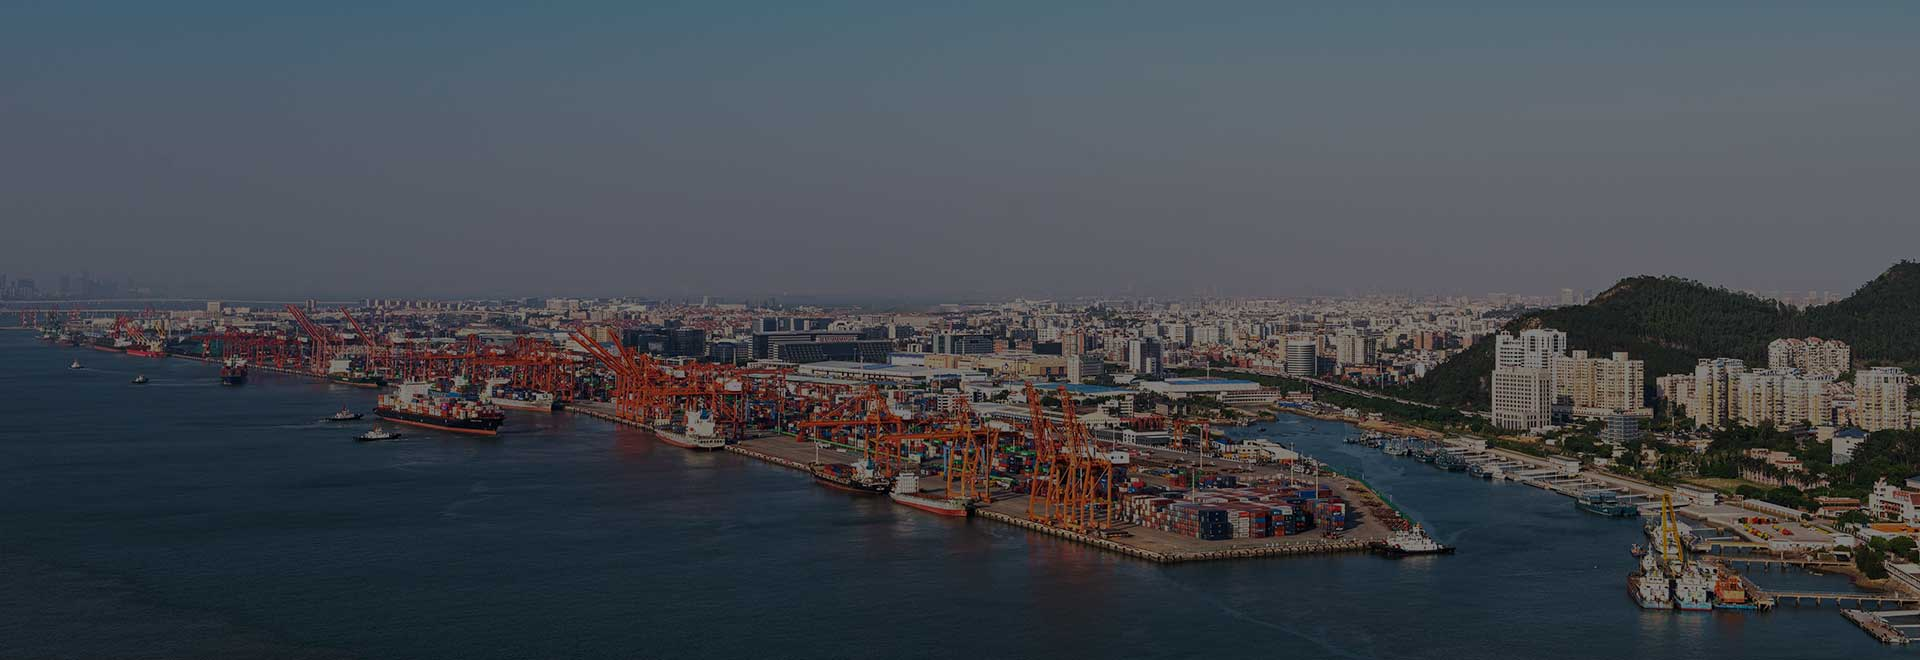 Main Operation Process and Problem Analysis of Sea Freight Consolidation